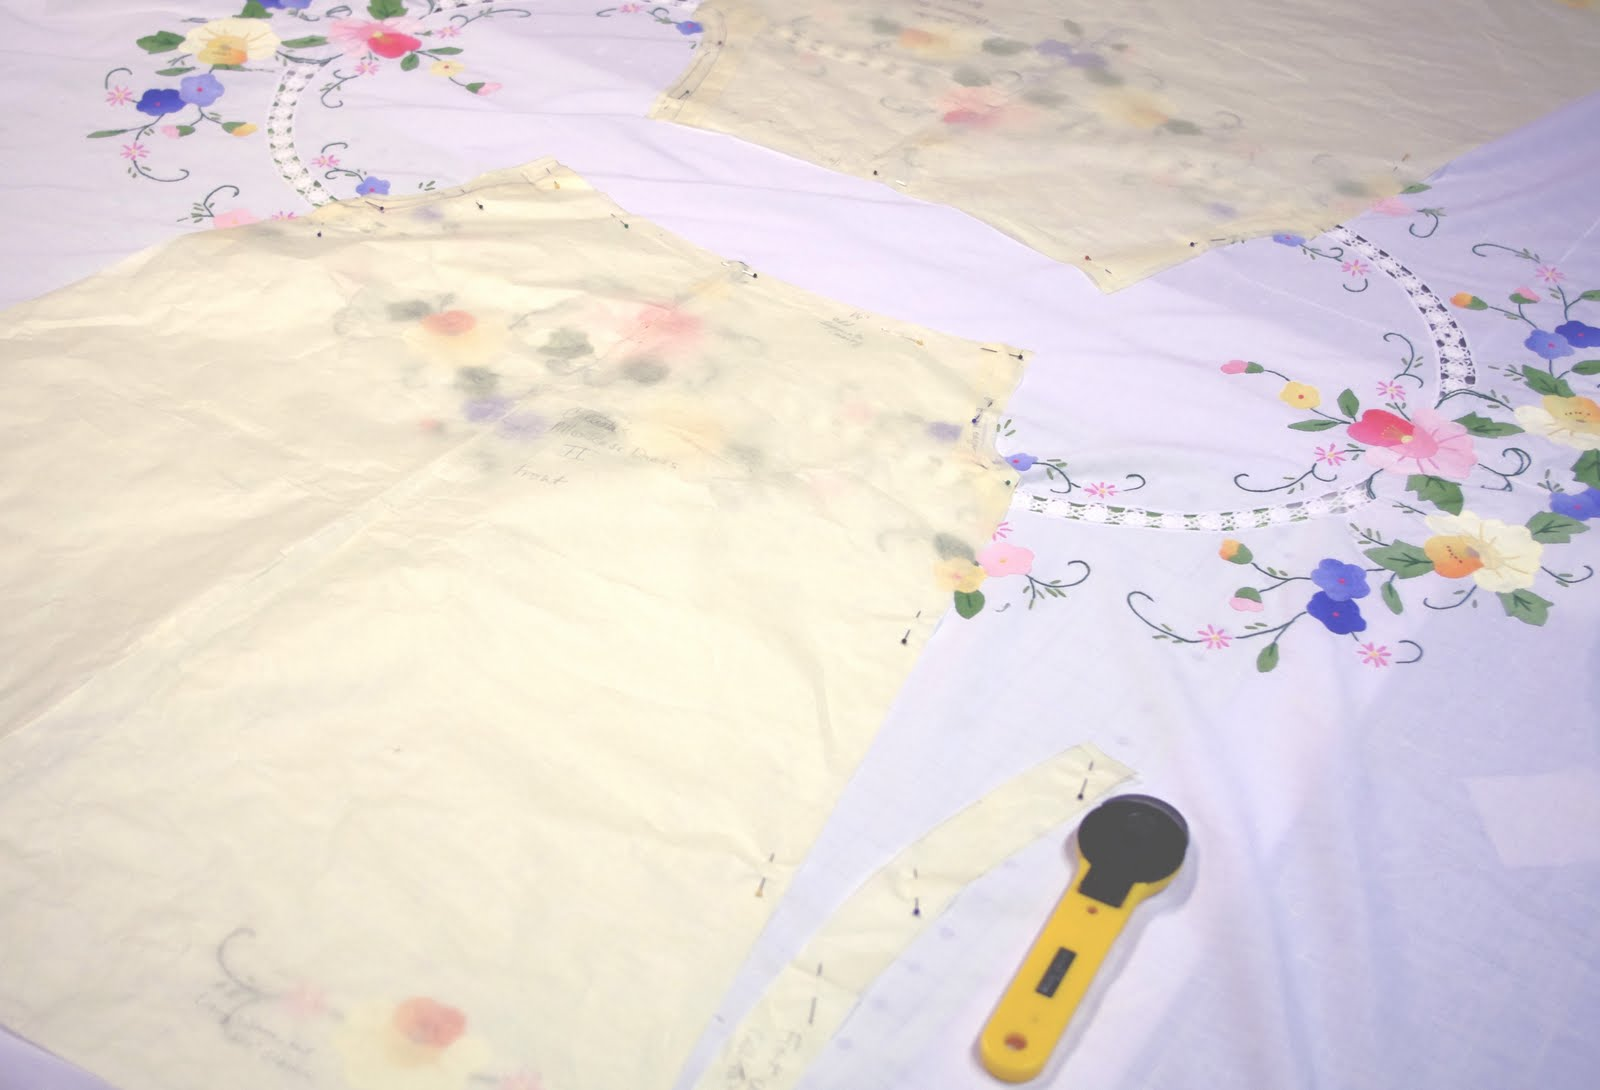 Applique designs for tablecloth - I Usually Use Manila Hard Patterns But I Like To Use Tissue When Cutting Out The Tablecloth Dresses Makes It Easier To Engineer The Placement